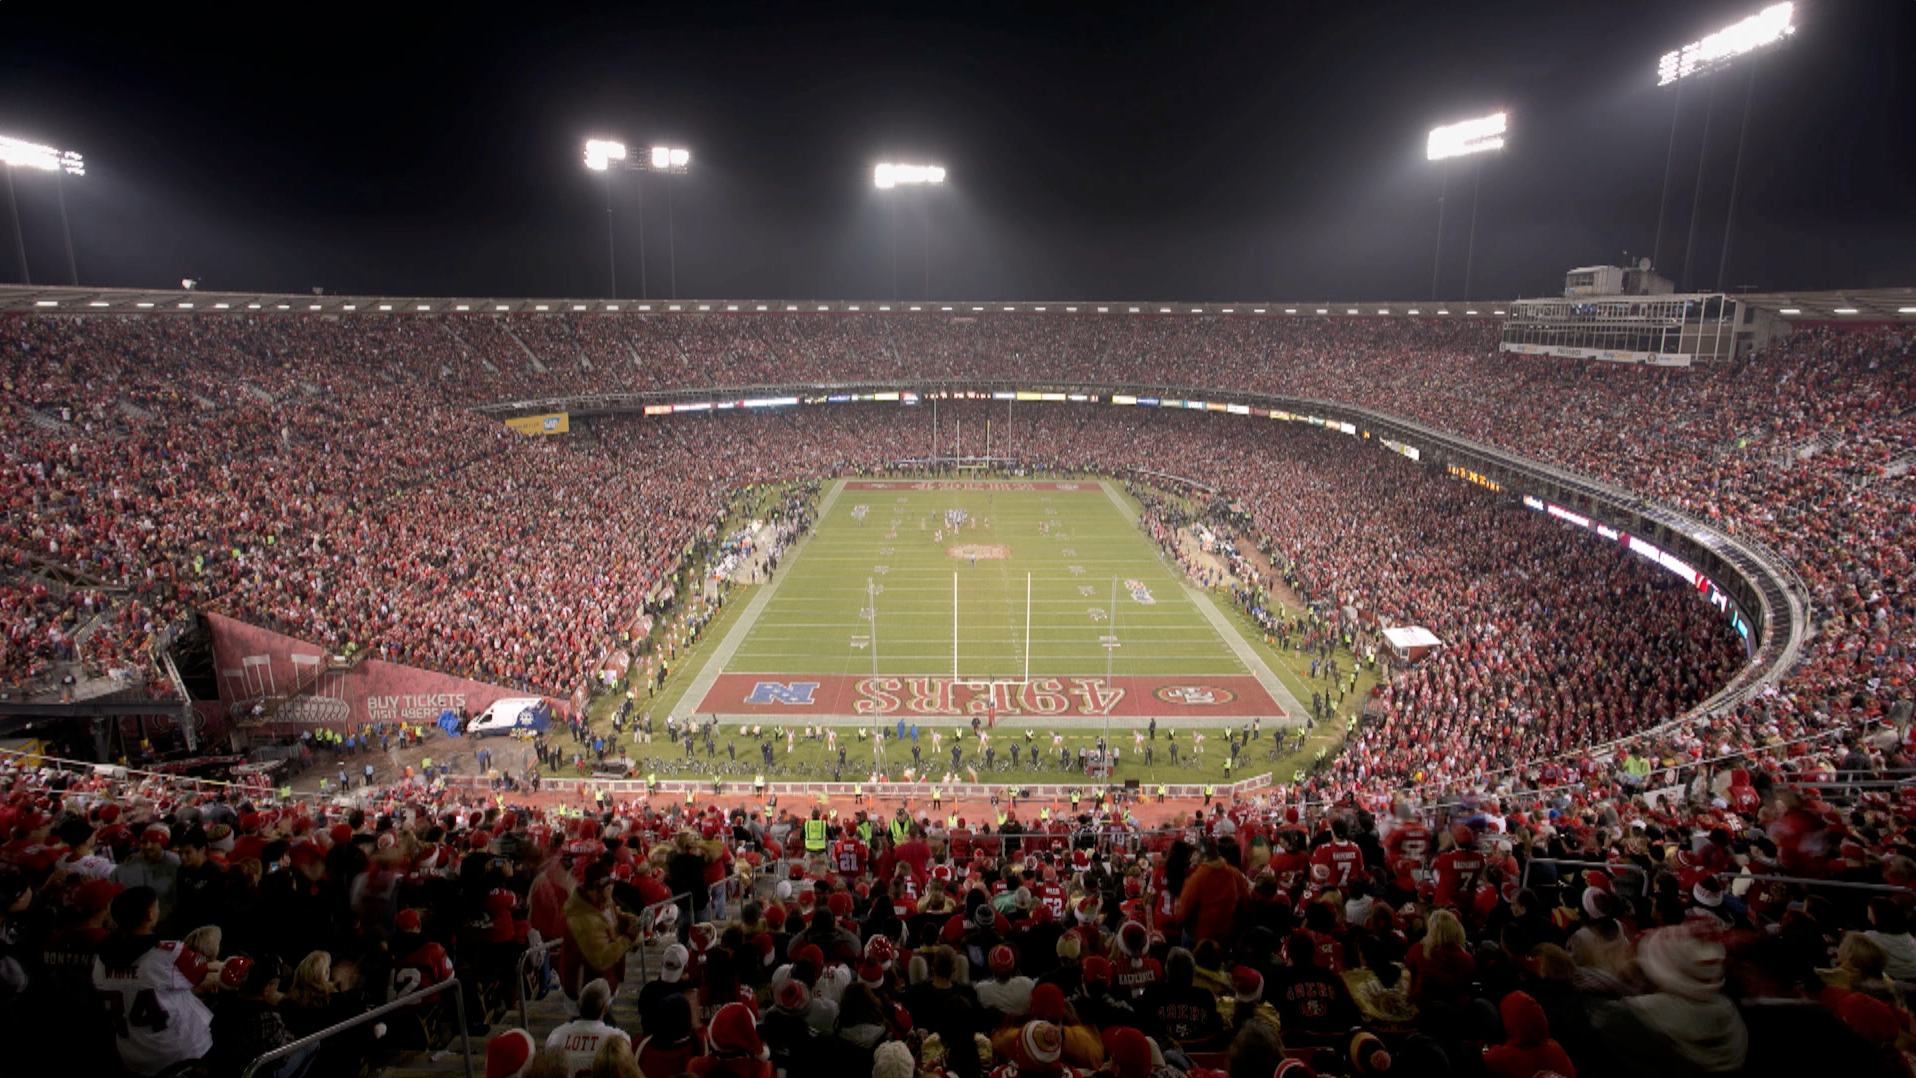 Last night at Candlestick Park.